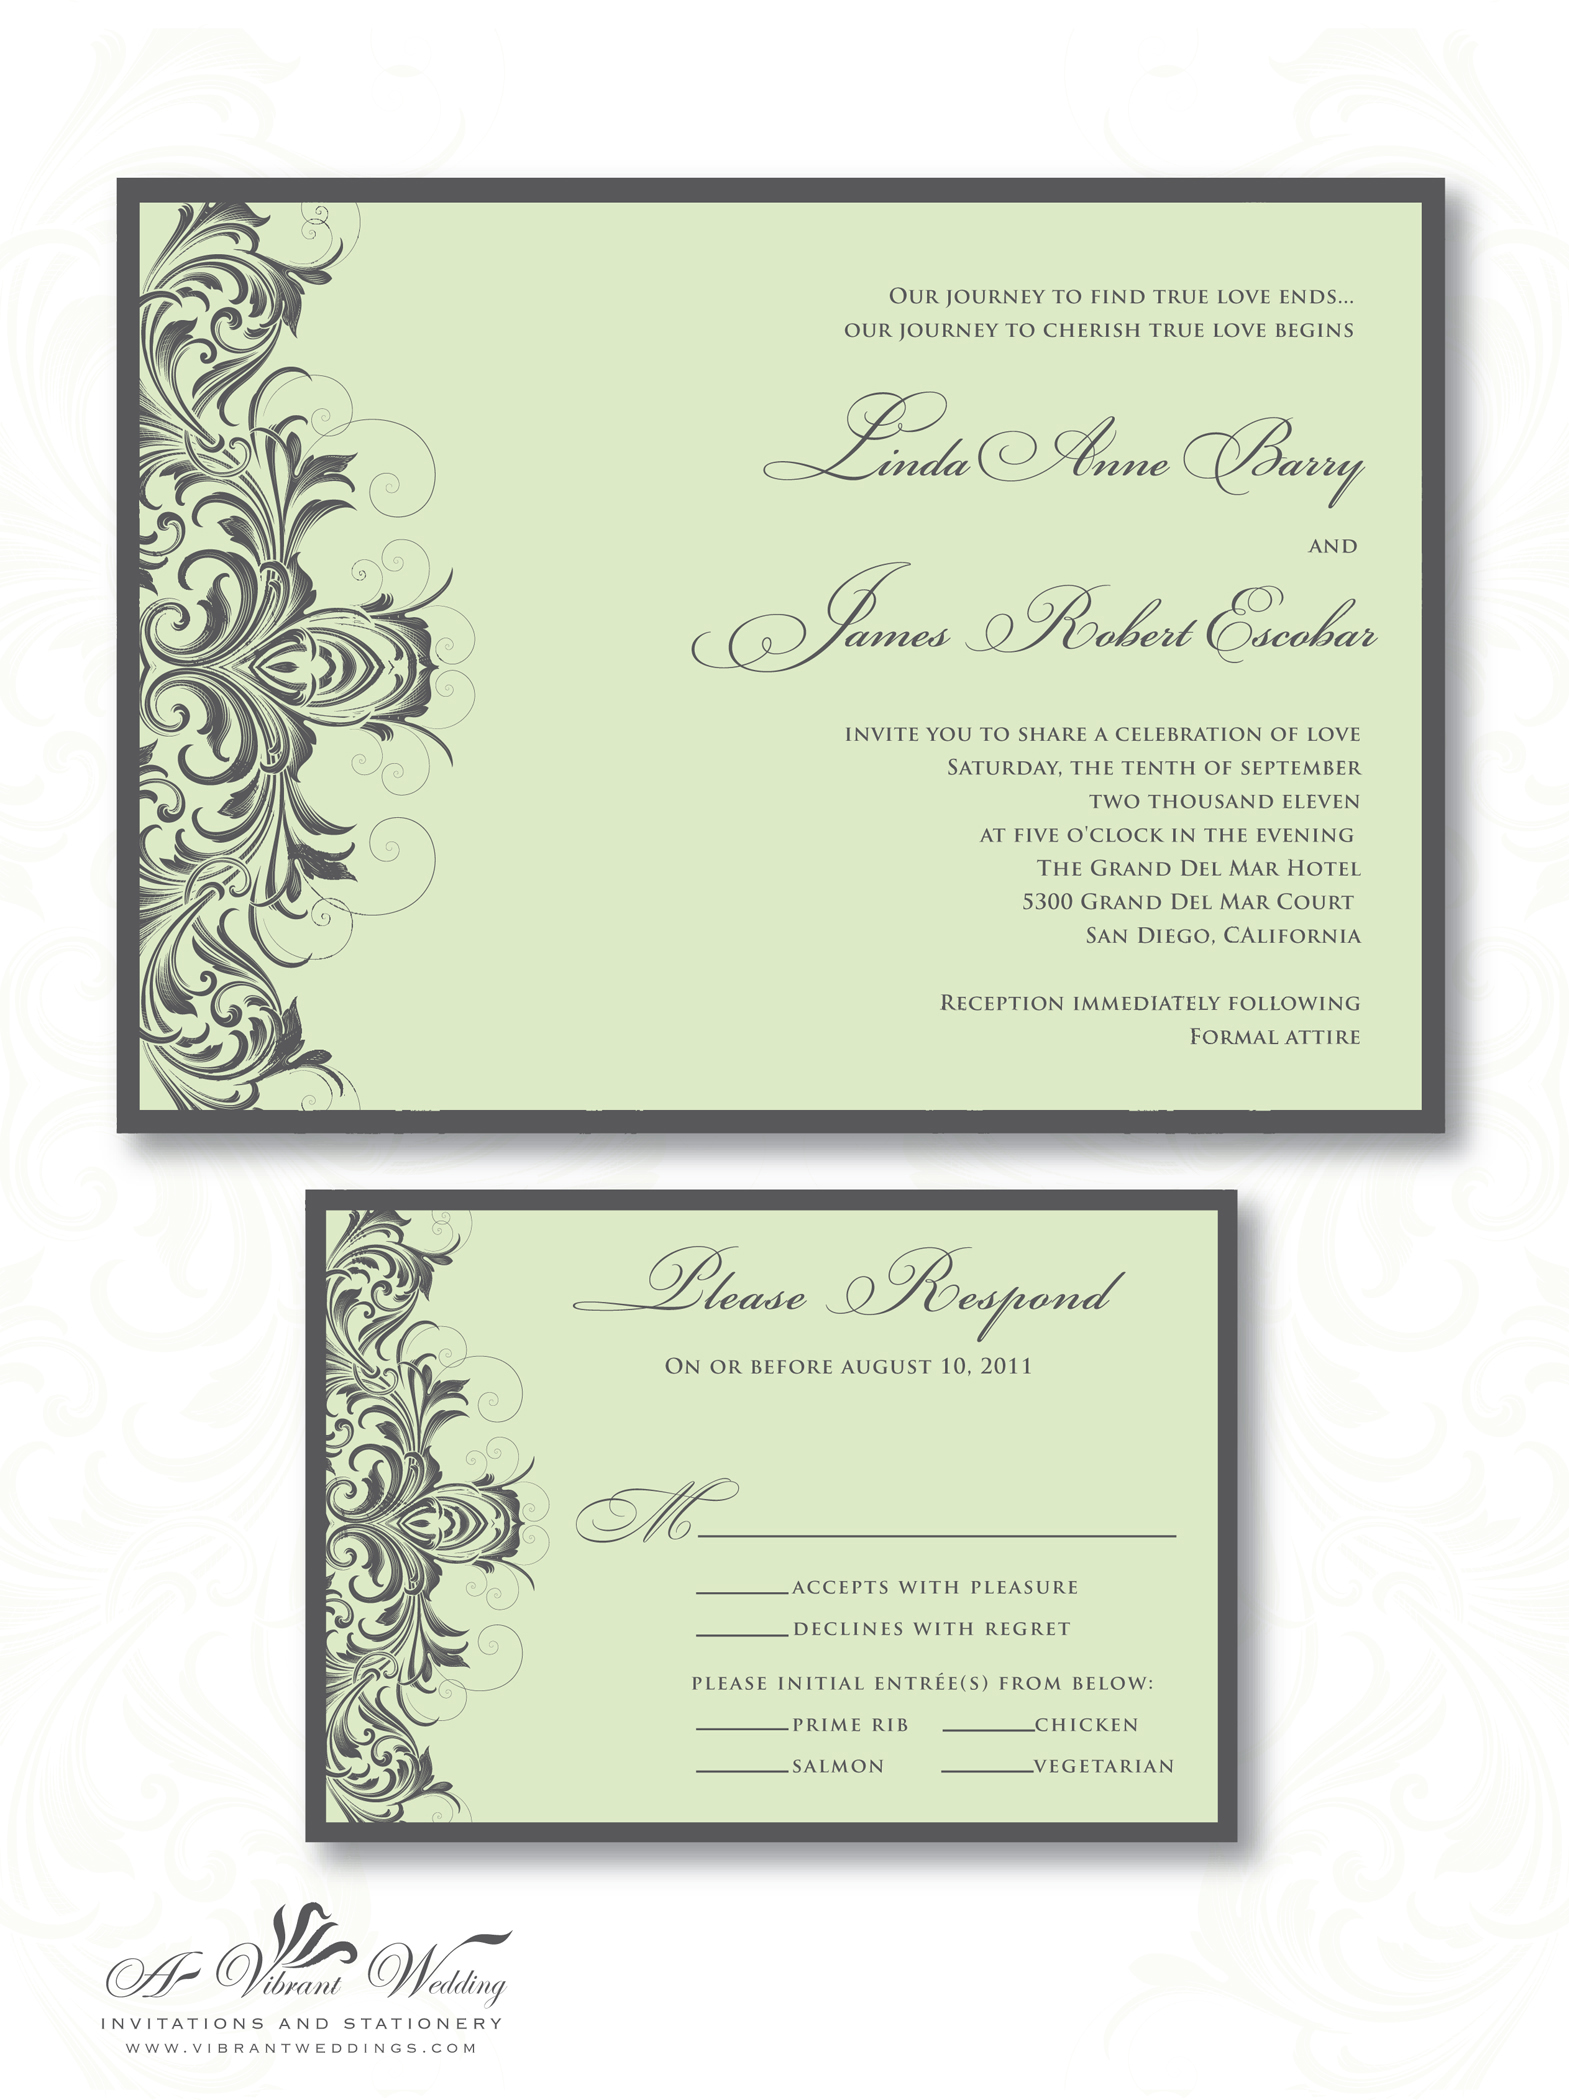 Vintage Wedding Invitation Idea